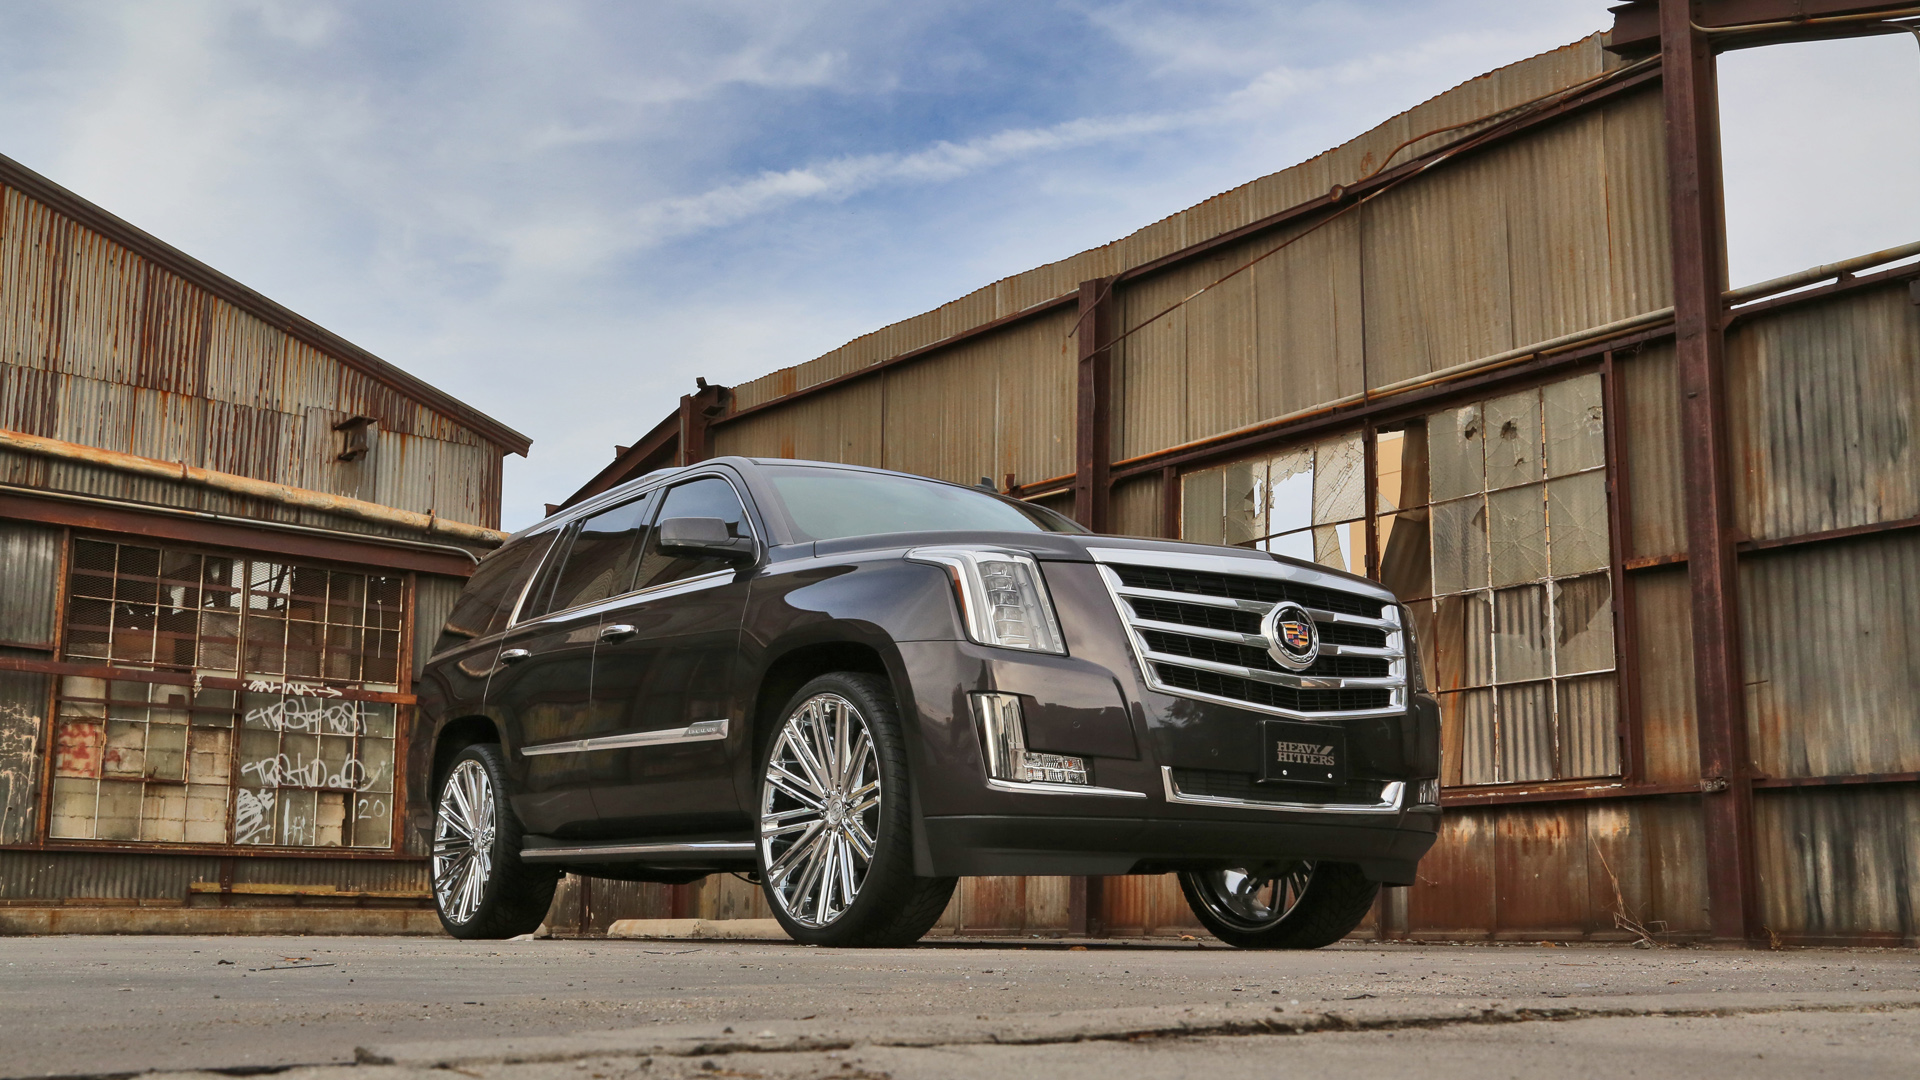 2015 Cadillac Escalade Hh12 Heavy Hitter Wheels